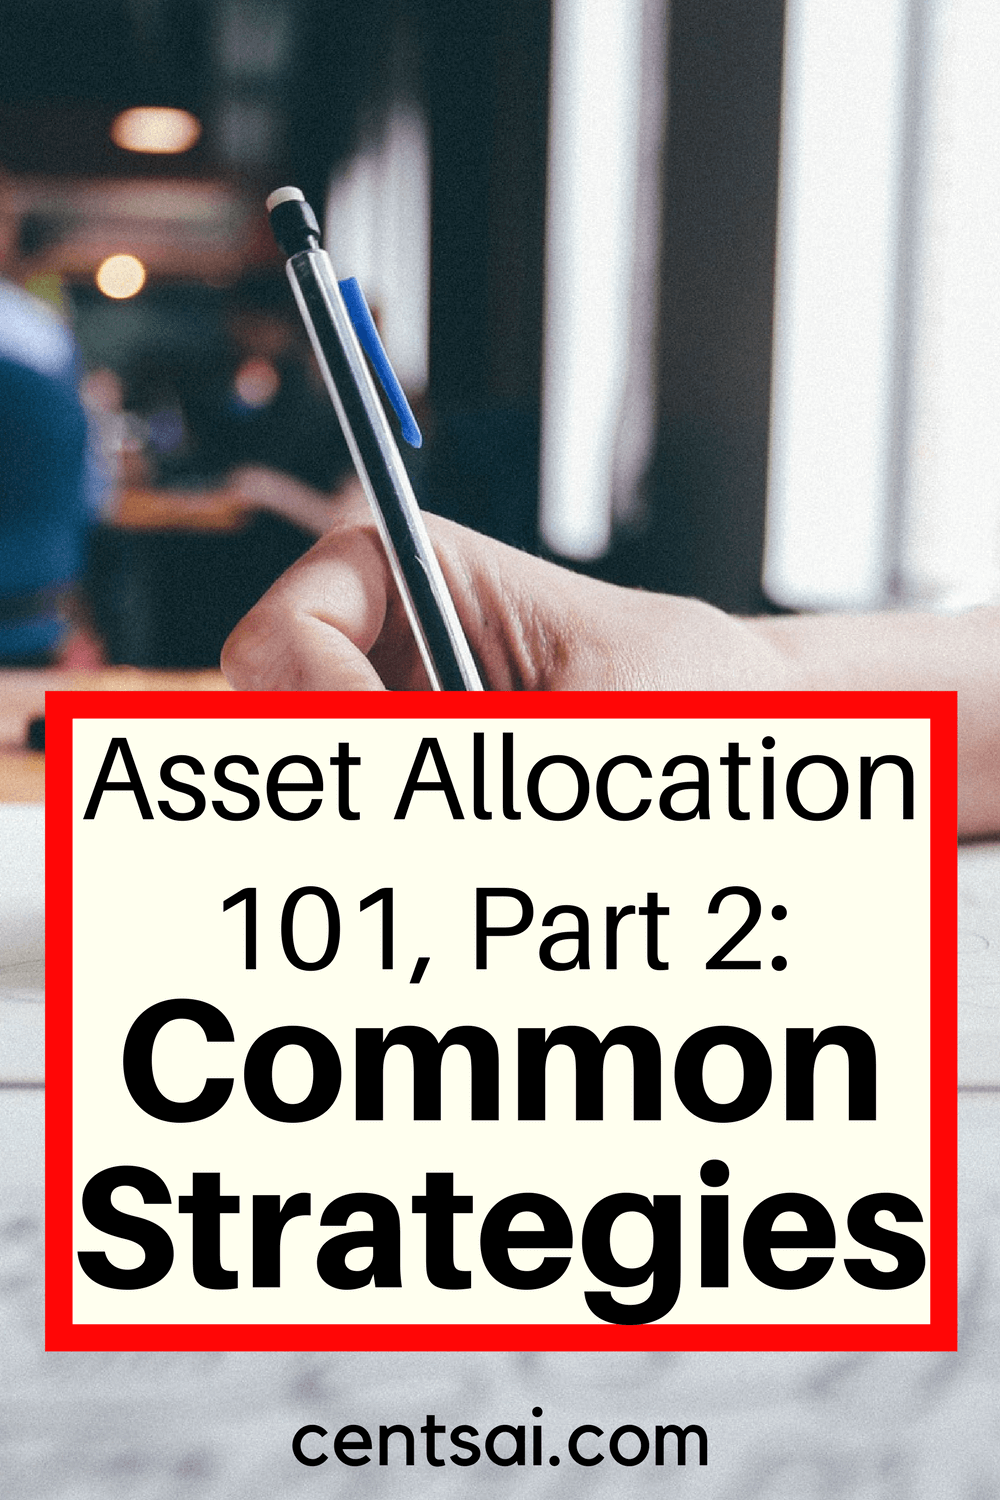 Asset Allocation 101, Part 2: Common Asset Allocation Strategies. Managing risk, and also managing investor behavior, are both enhanced by the appropriate use of tools such as asset allocation.